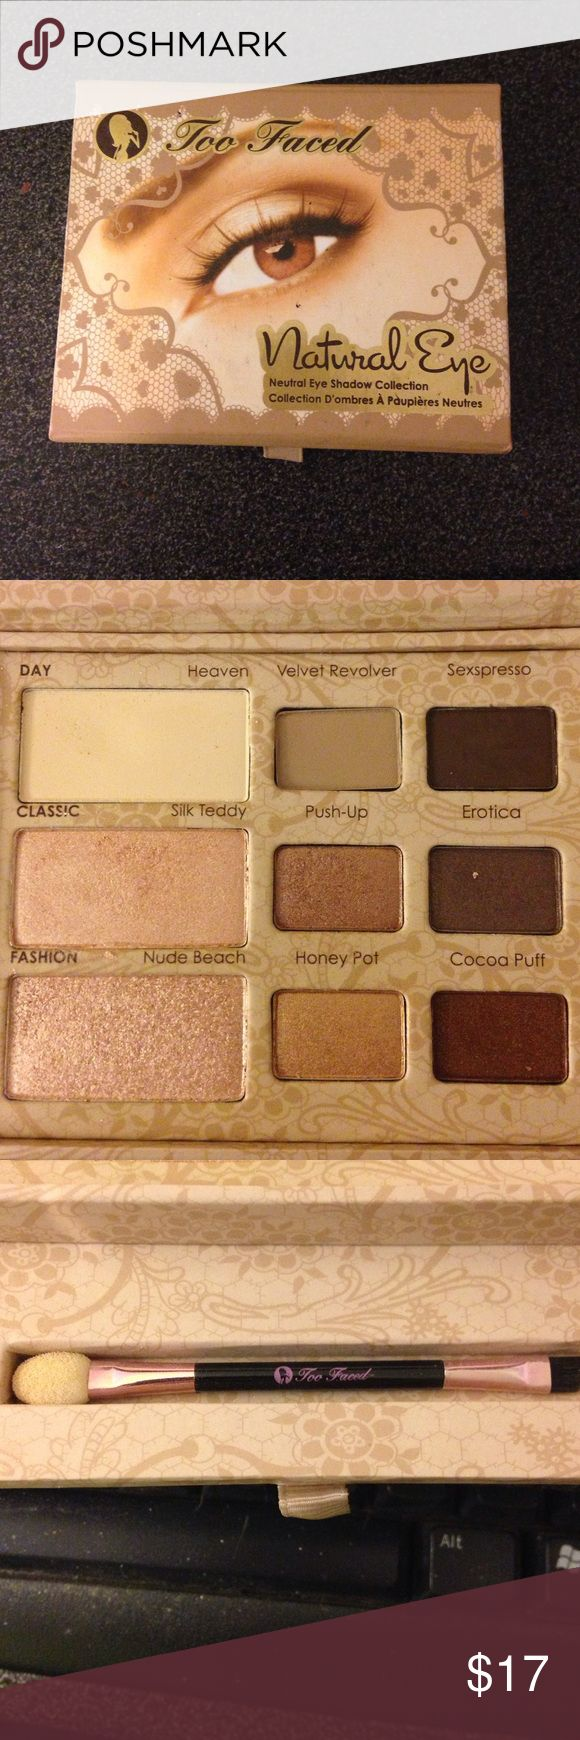 Too faced eyeshadow box Two faced natural eyeshadow box with brush. New never used Too Faced Makeup Eyeshadow